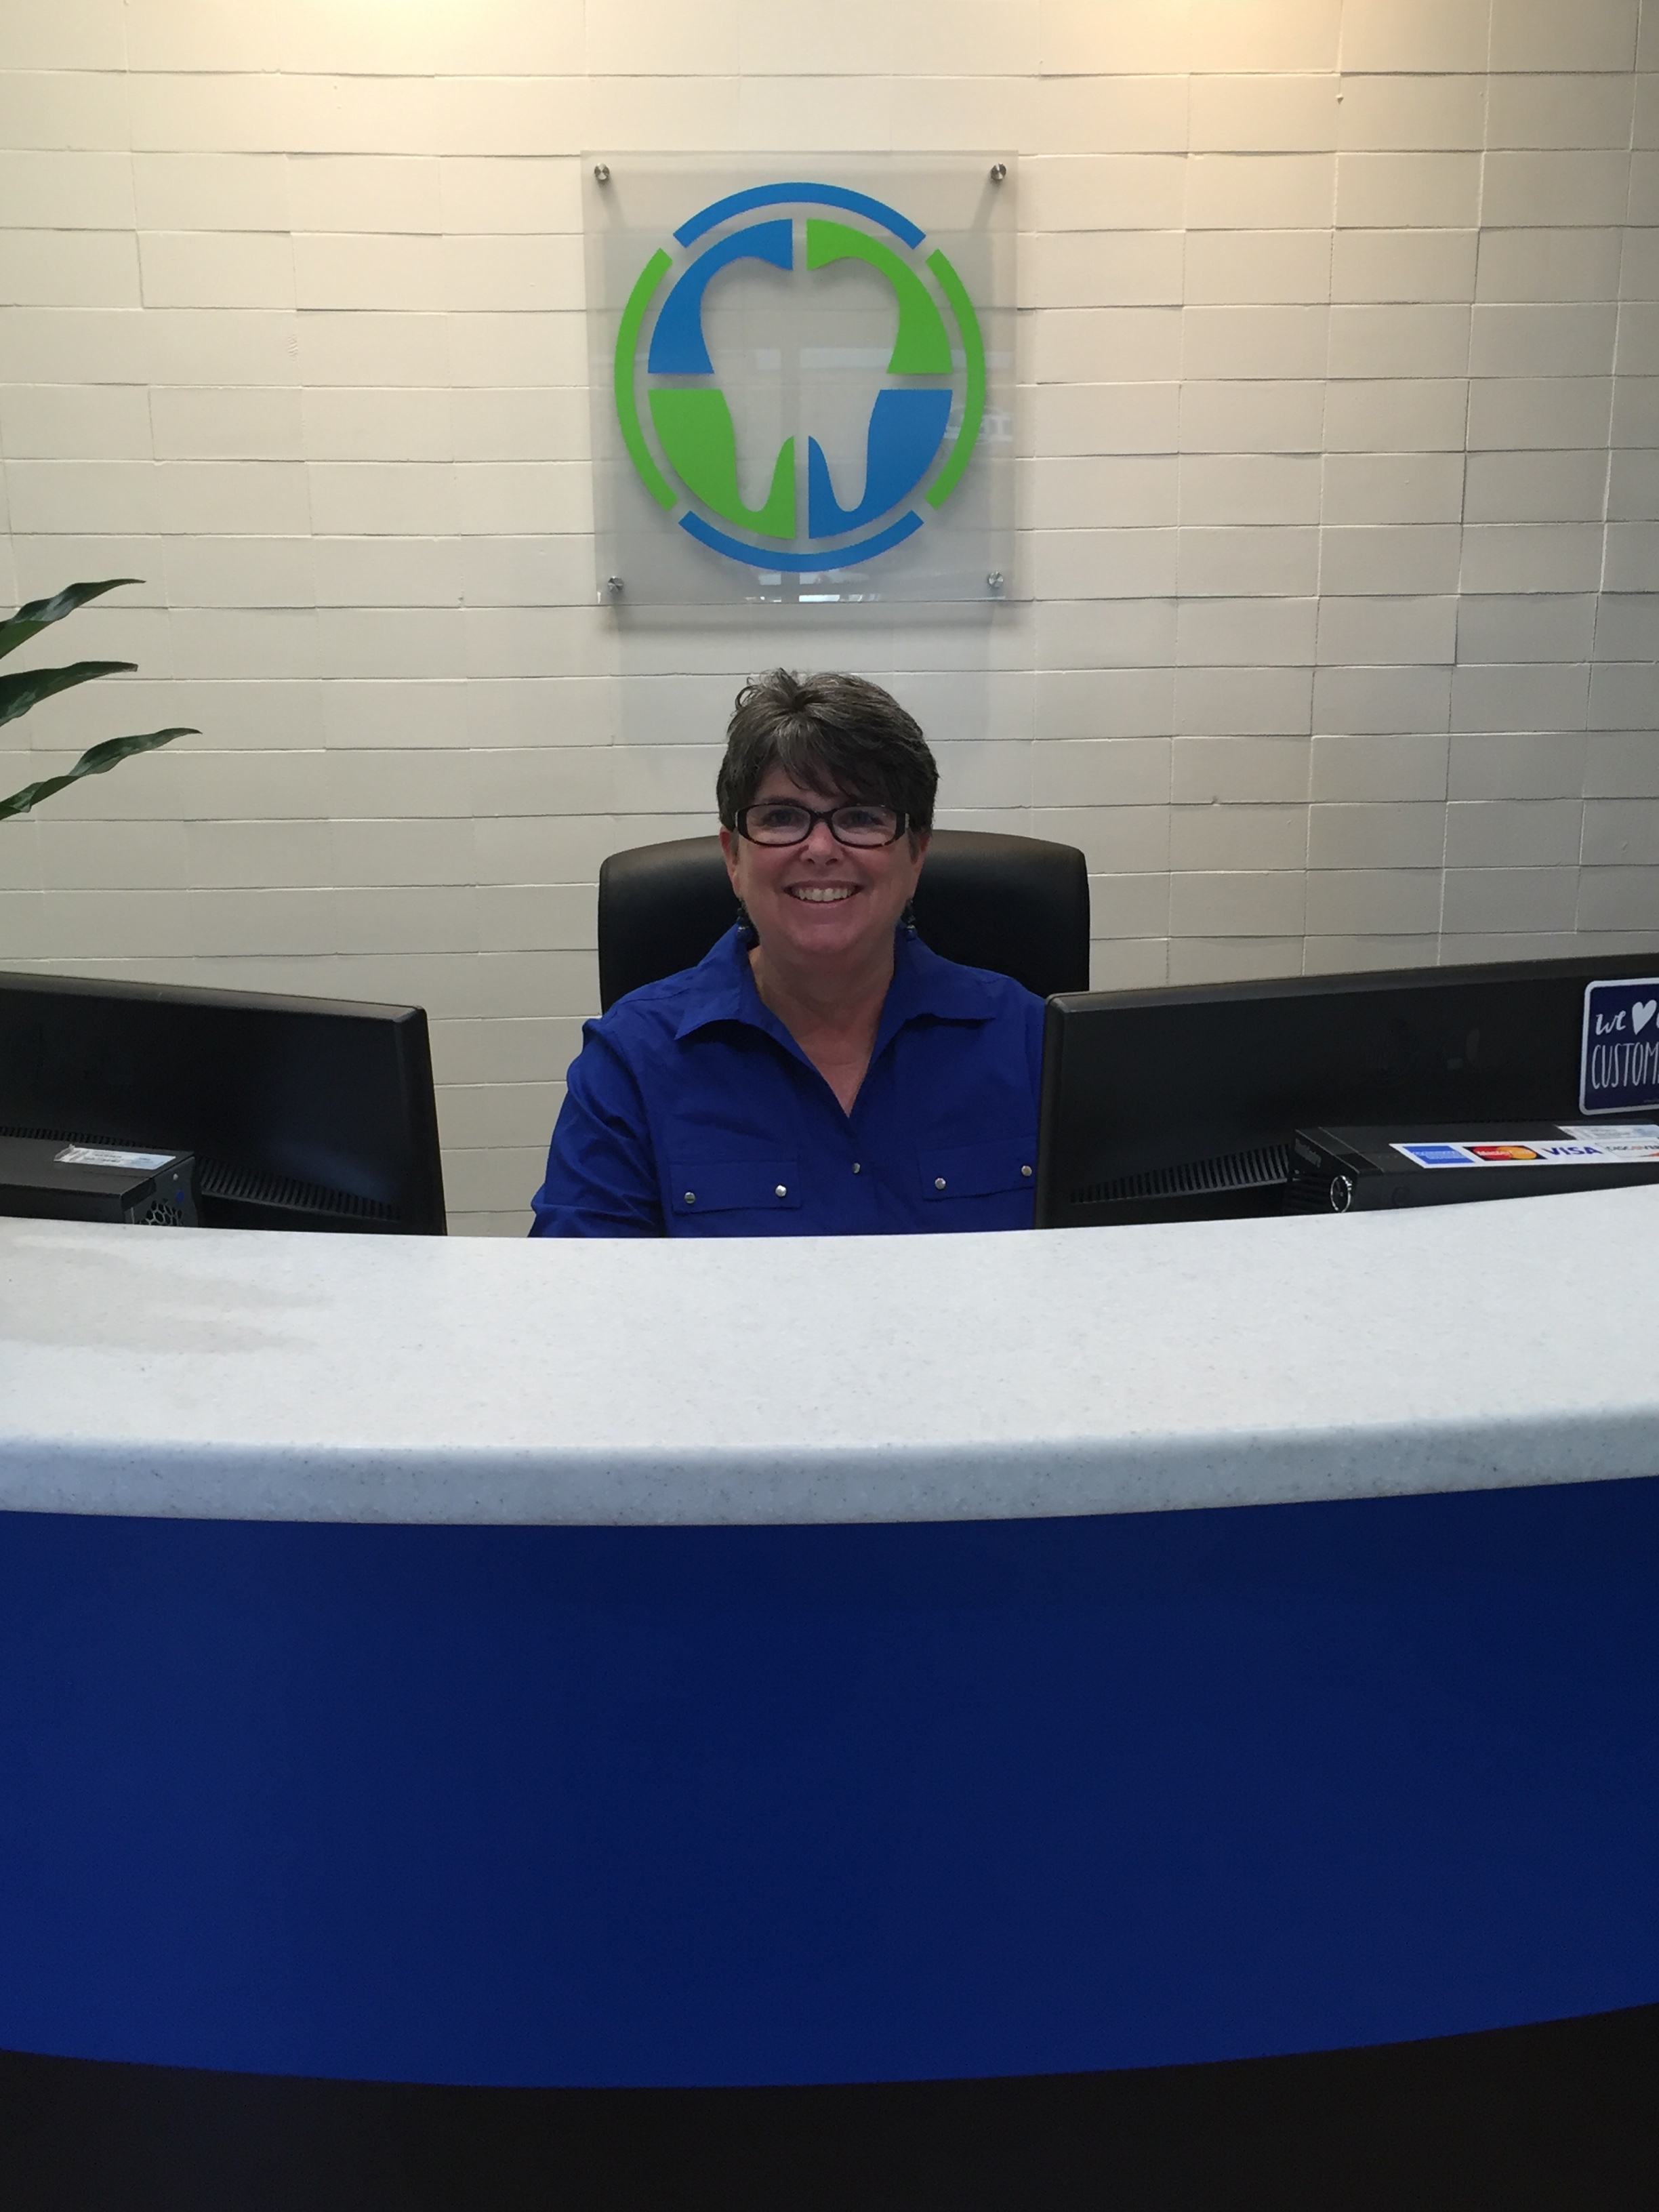 Lynn sits behind a desk, smiling, in front of the Prime Family Dental logo.